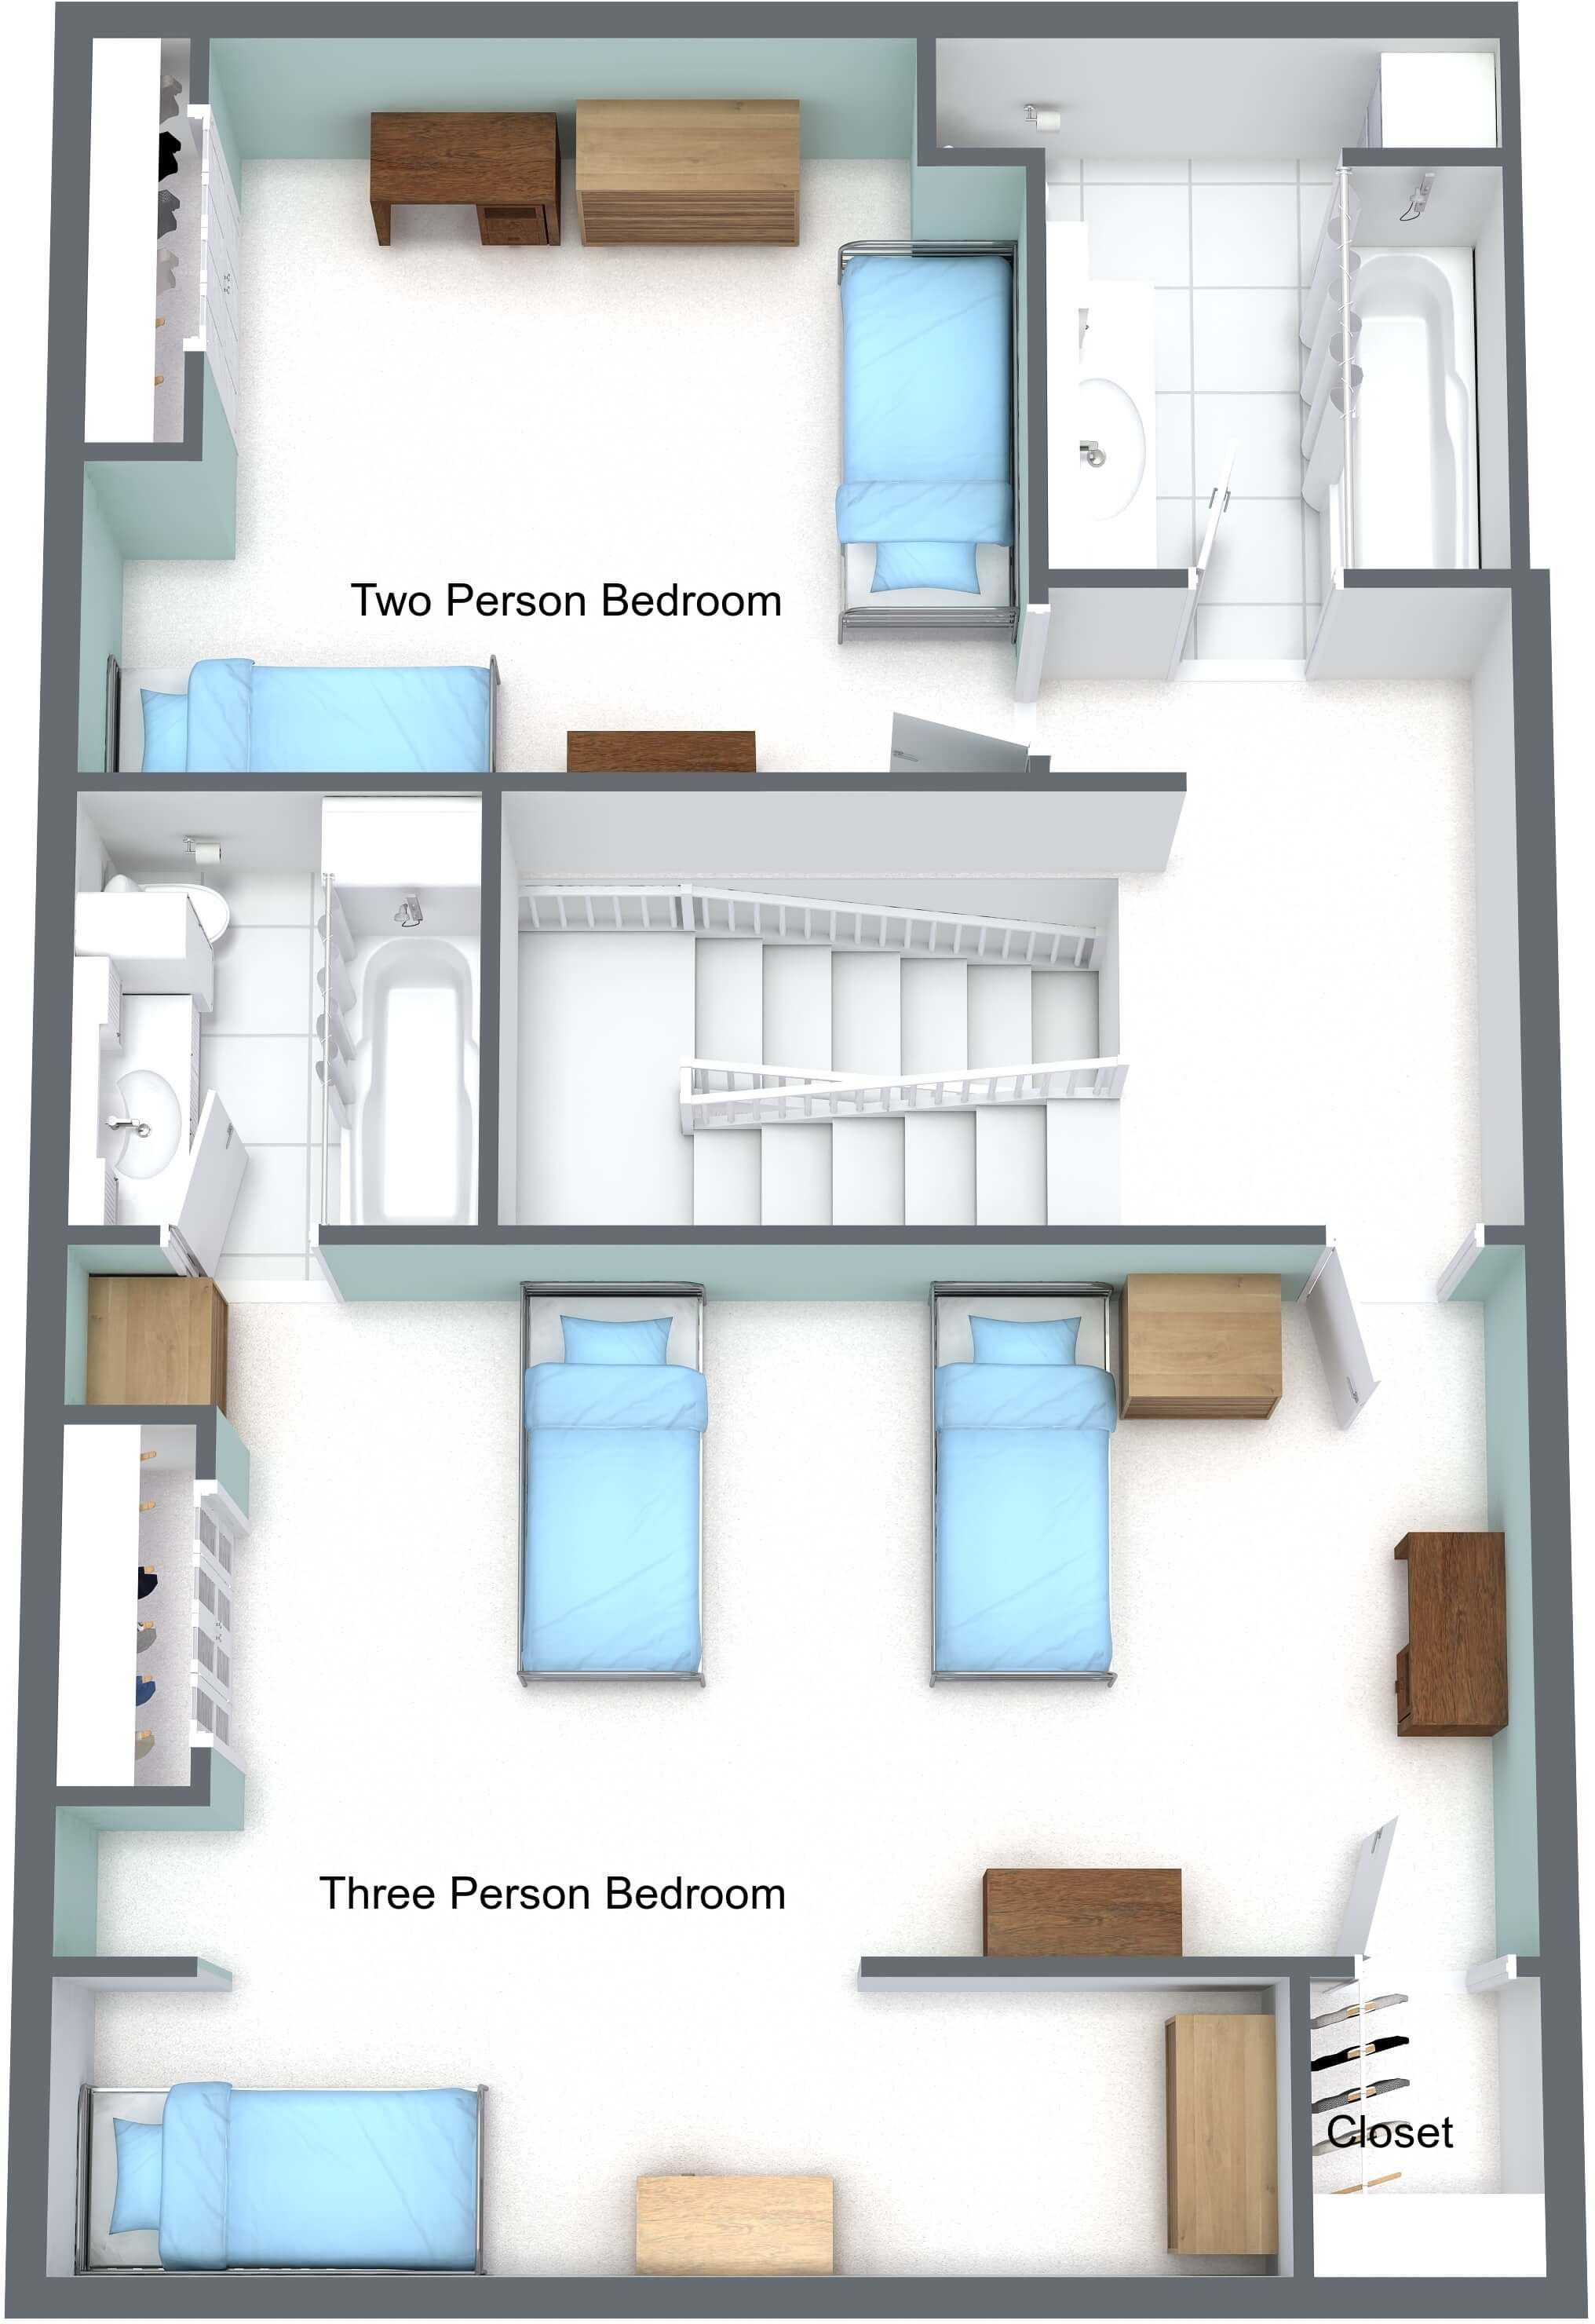 Sample upper floor level rendering of townhomes on campus of University of St. Thomas in Houston, Texas